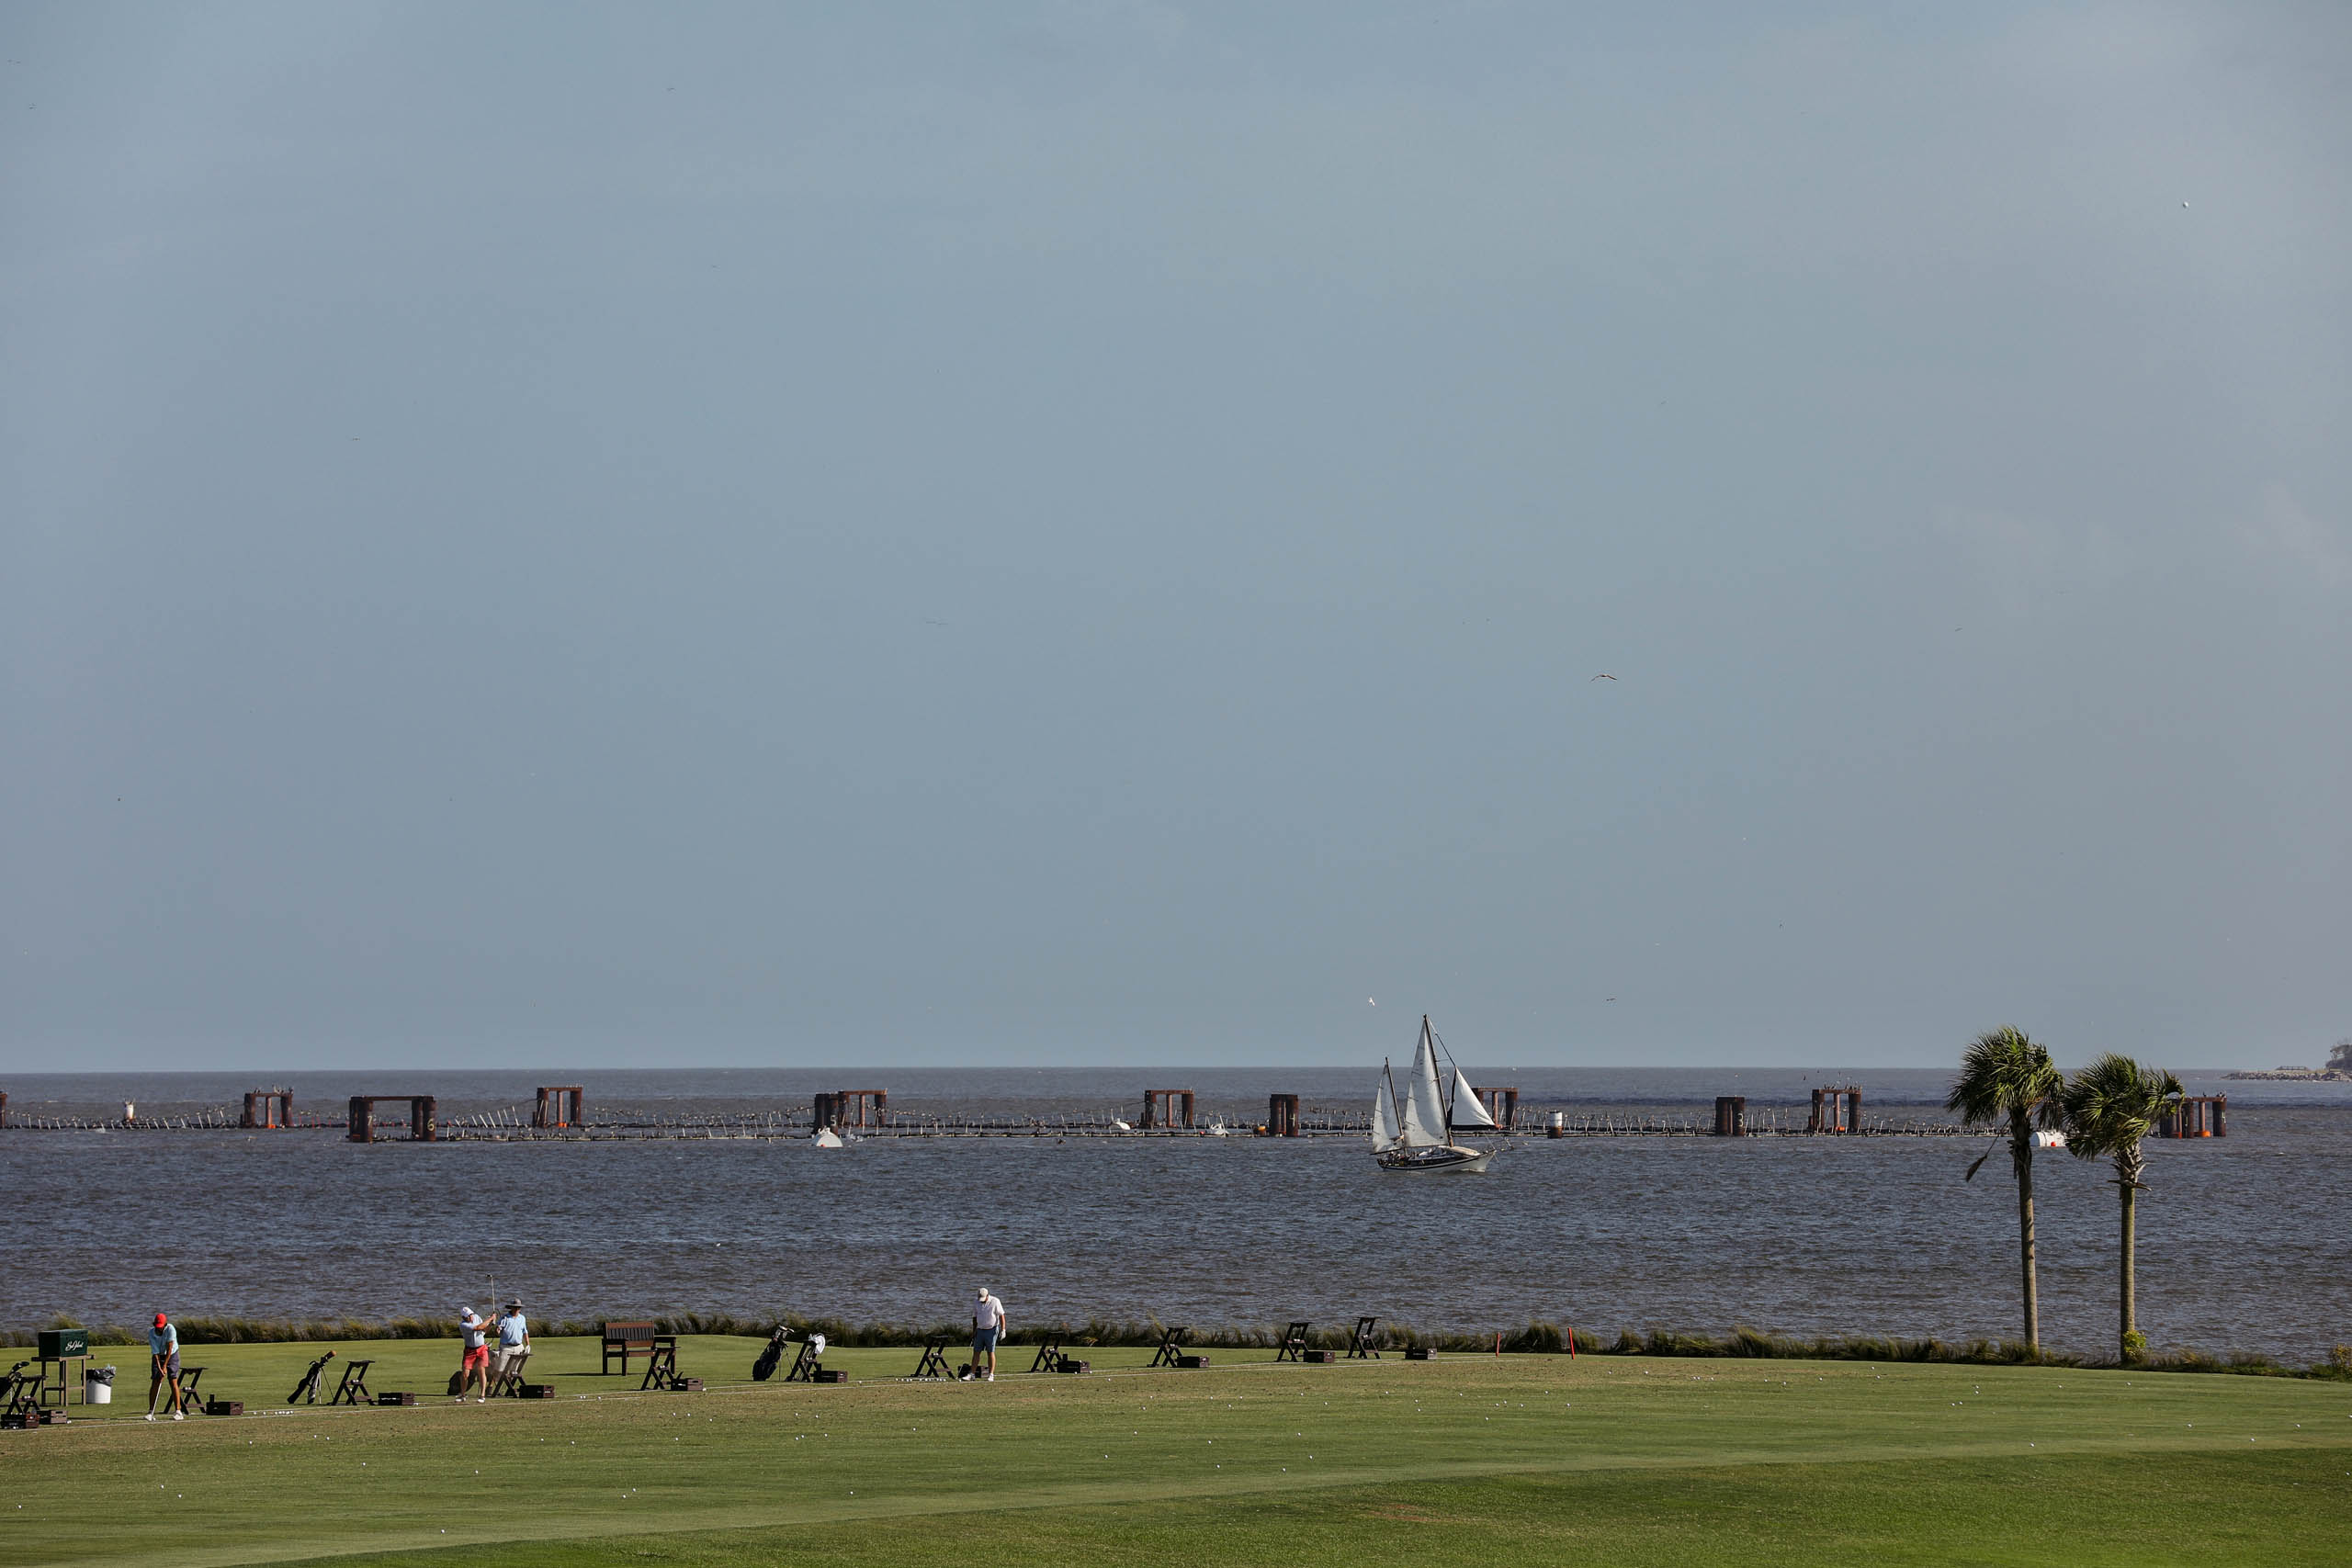 Different boats with altogether different cargo could be seen in the waters off Sea Island during the 1700s.